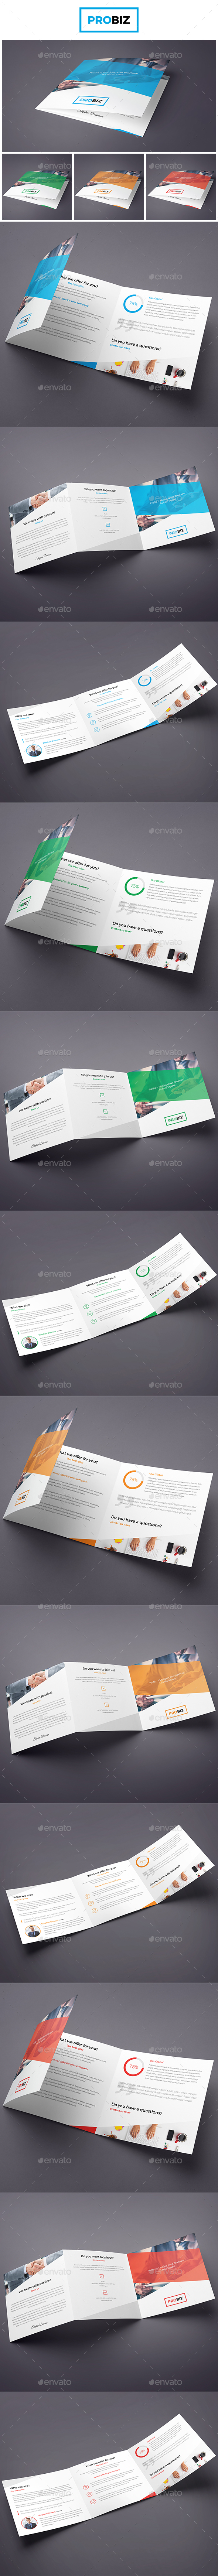 ProBiz – Business and Corporate Brochure Tri-Fold Square - Corporate Brochures